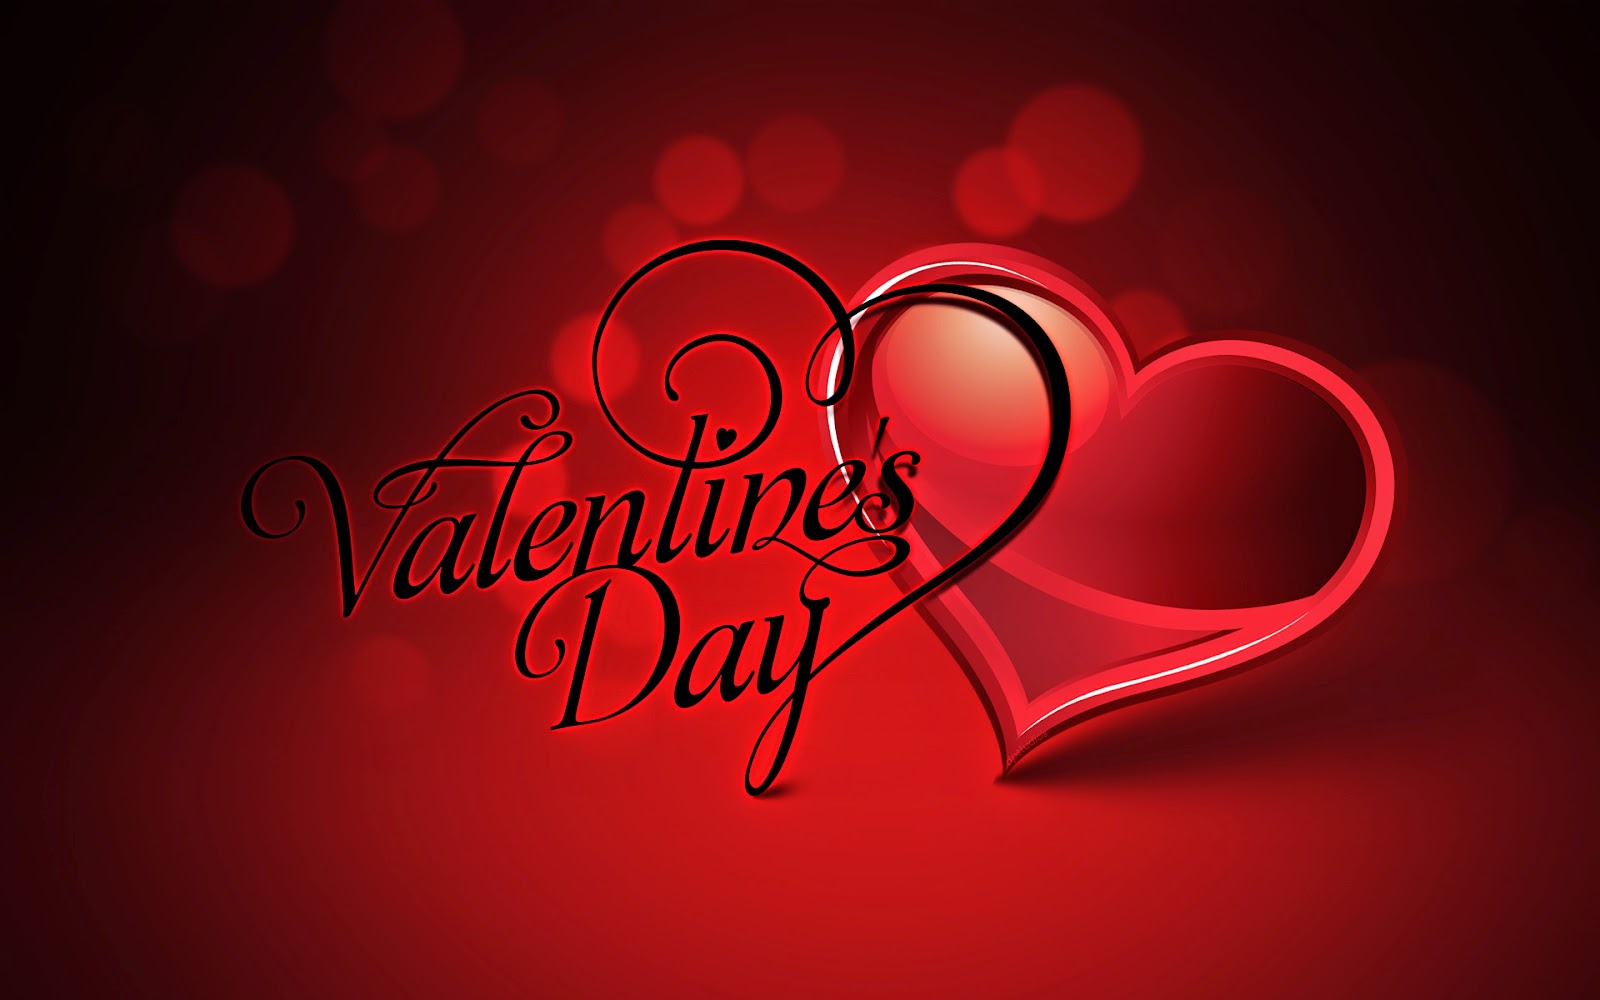 Happy Valentines Day Images for *Whatsapp*